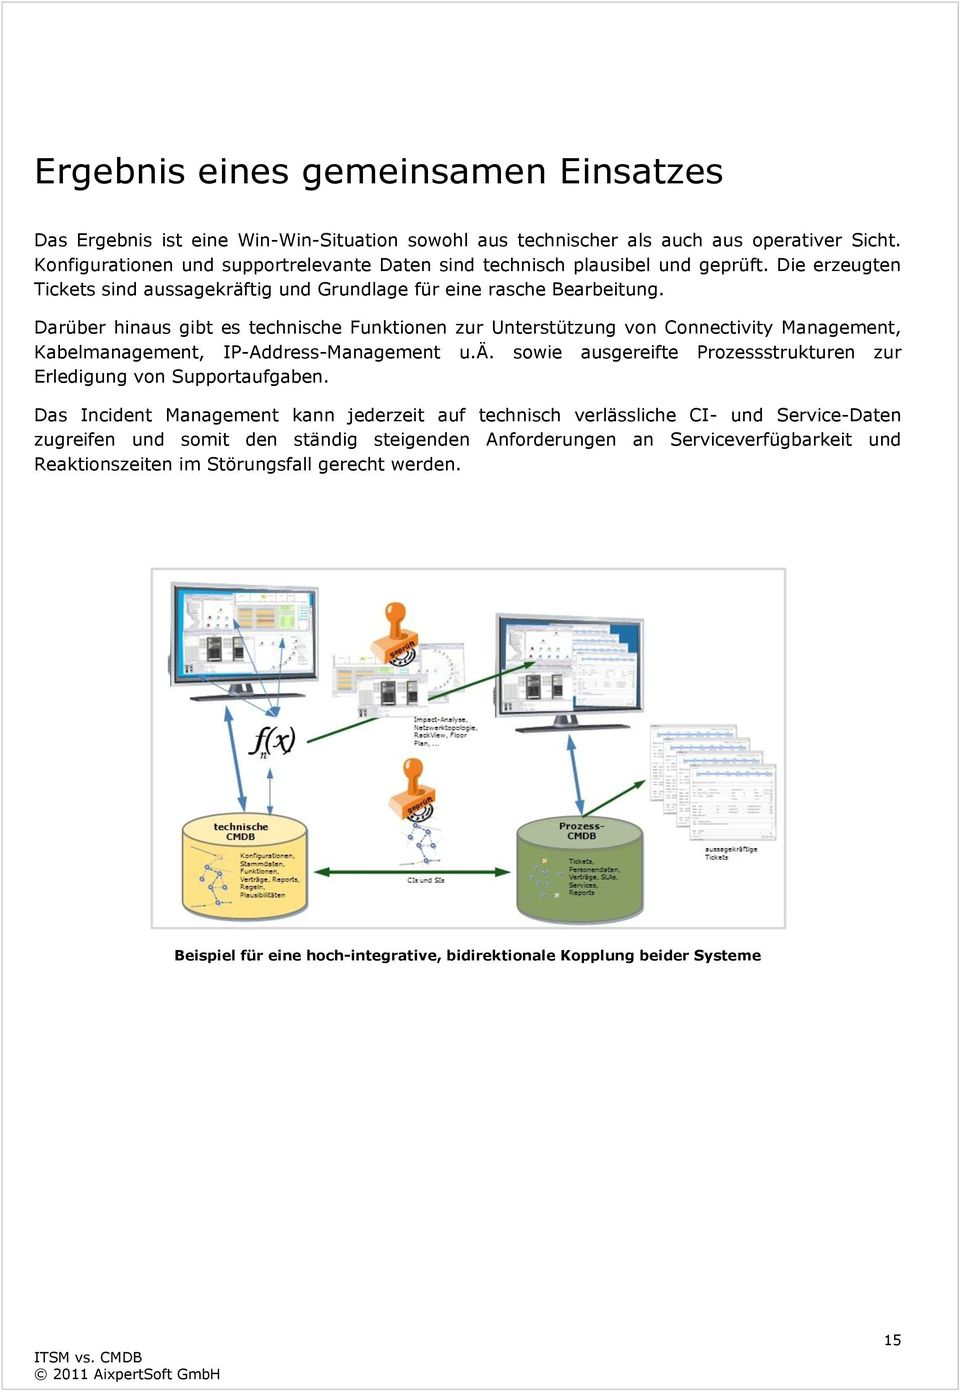 Darüber hinaus gibt es technische Funktionen zur Unterstützung von Connectivity Management, Kabelmanagement, IP-Address-Management u.ä.